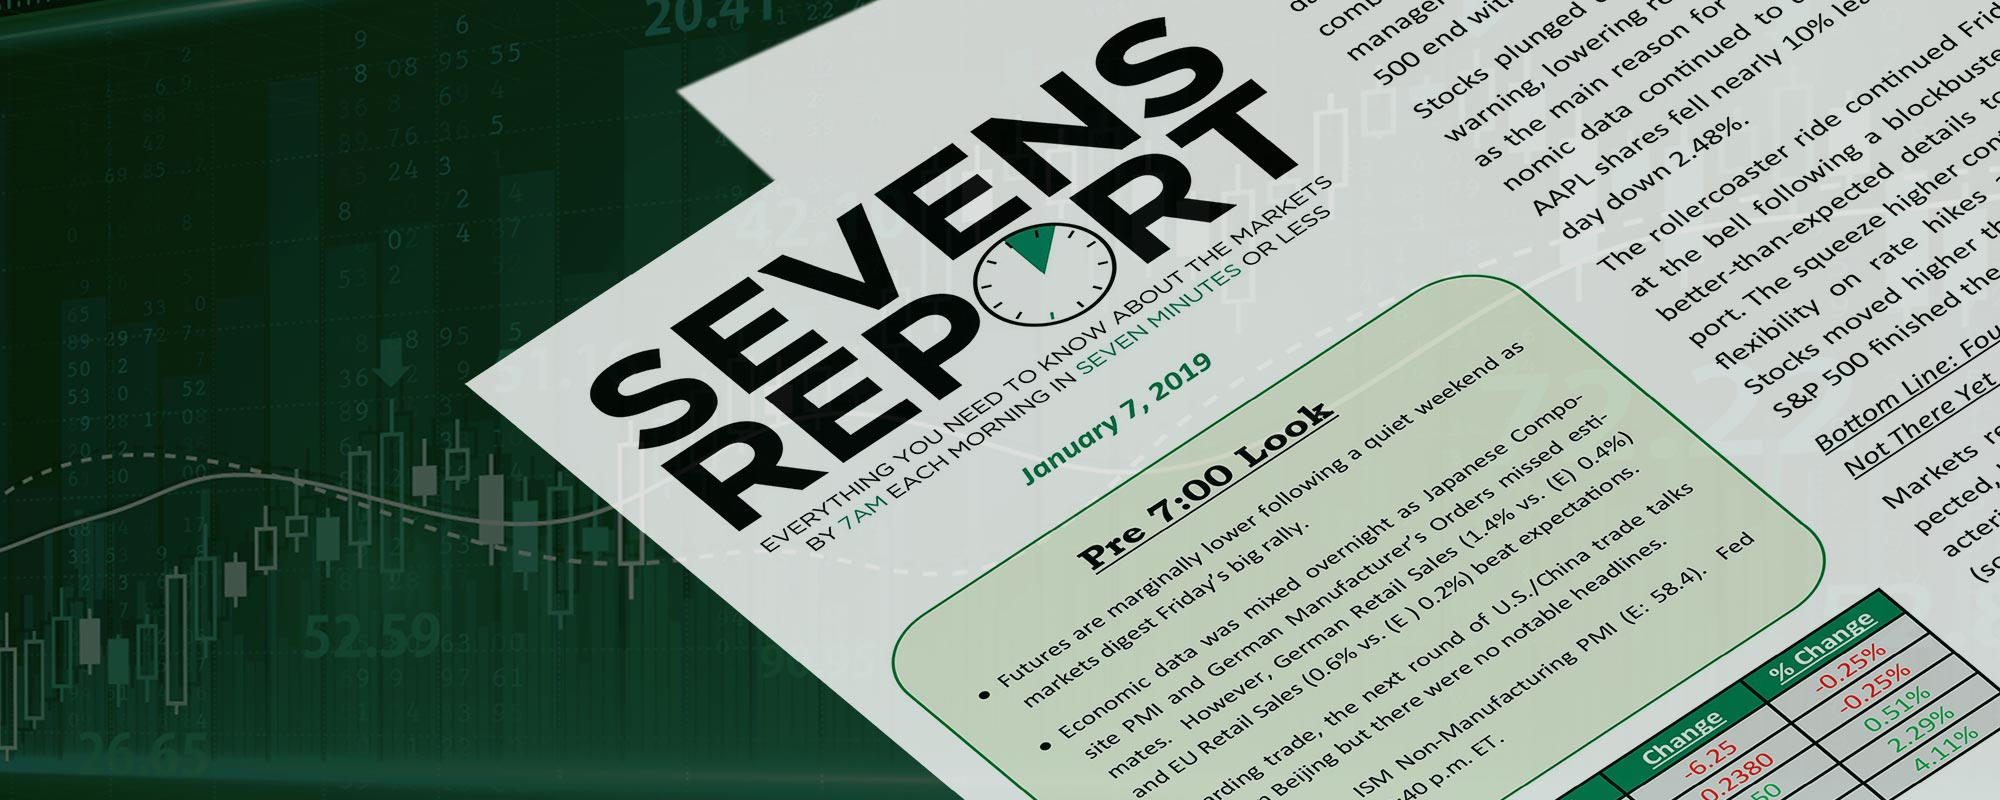 Sevens Report Research